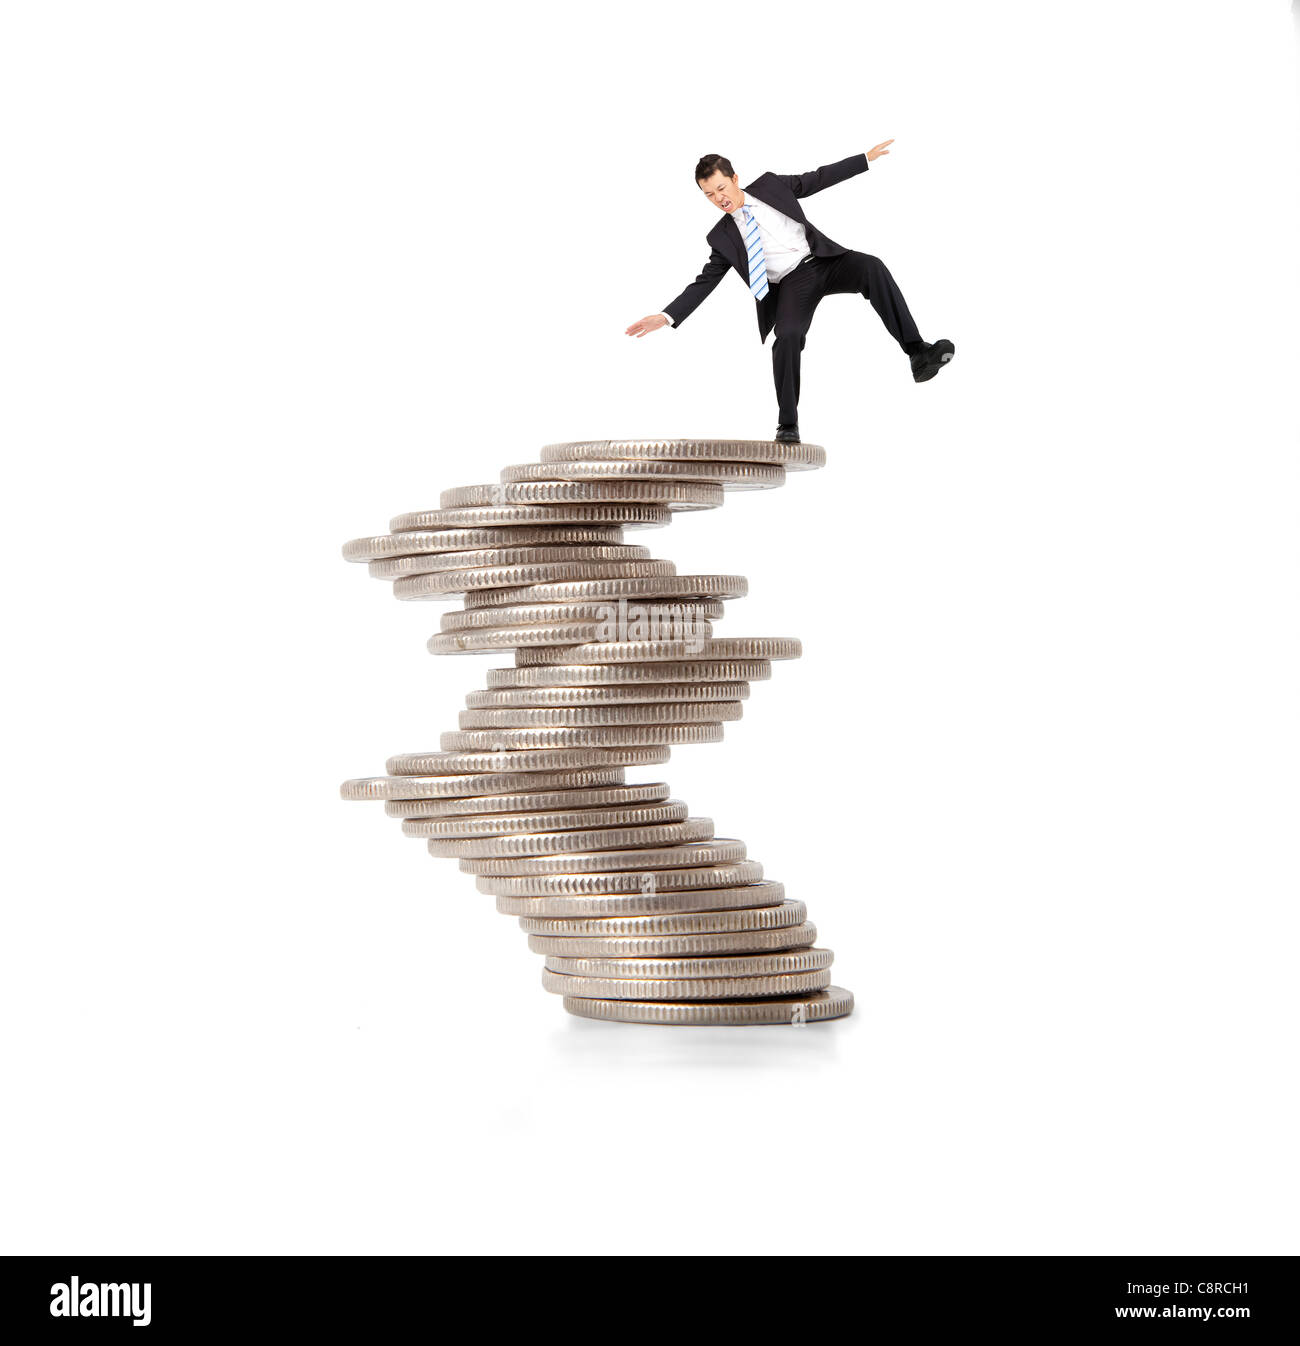 financial and crisis concept. businessman standing on the unstable coins - Stock Image